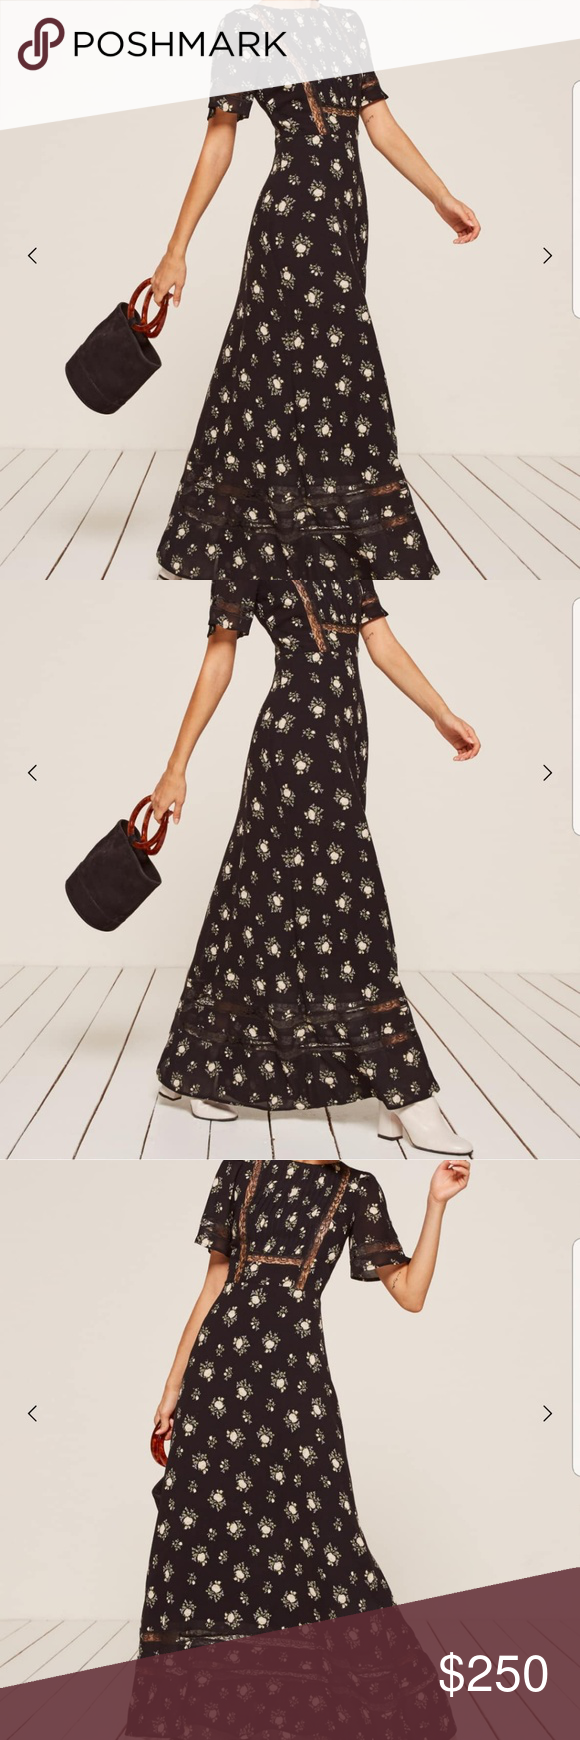 Featured on Refinery 20 Patchioli Reformation Reformation ...